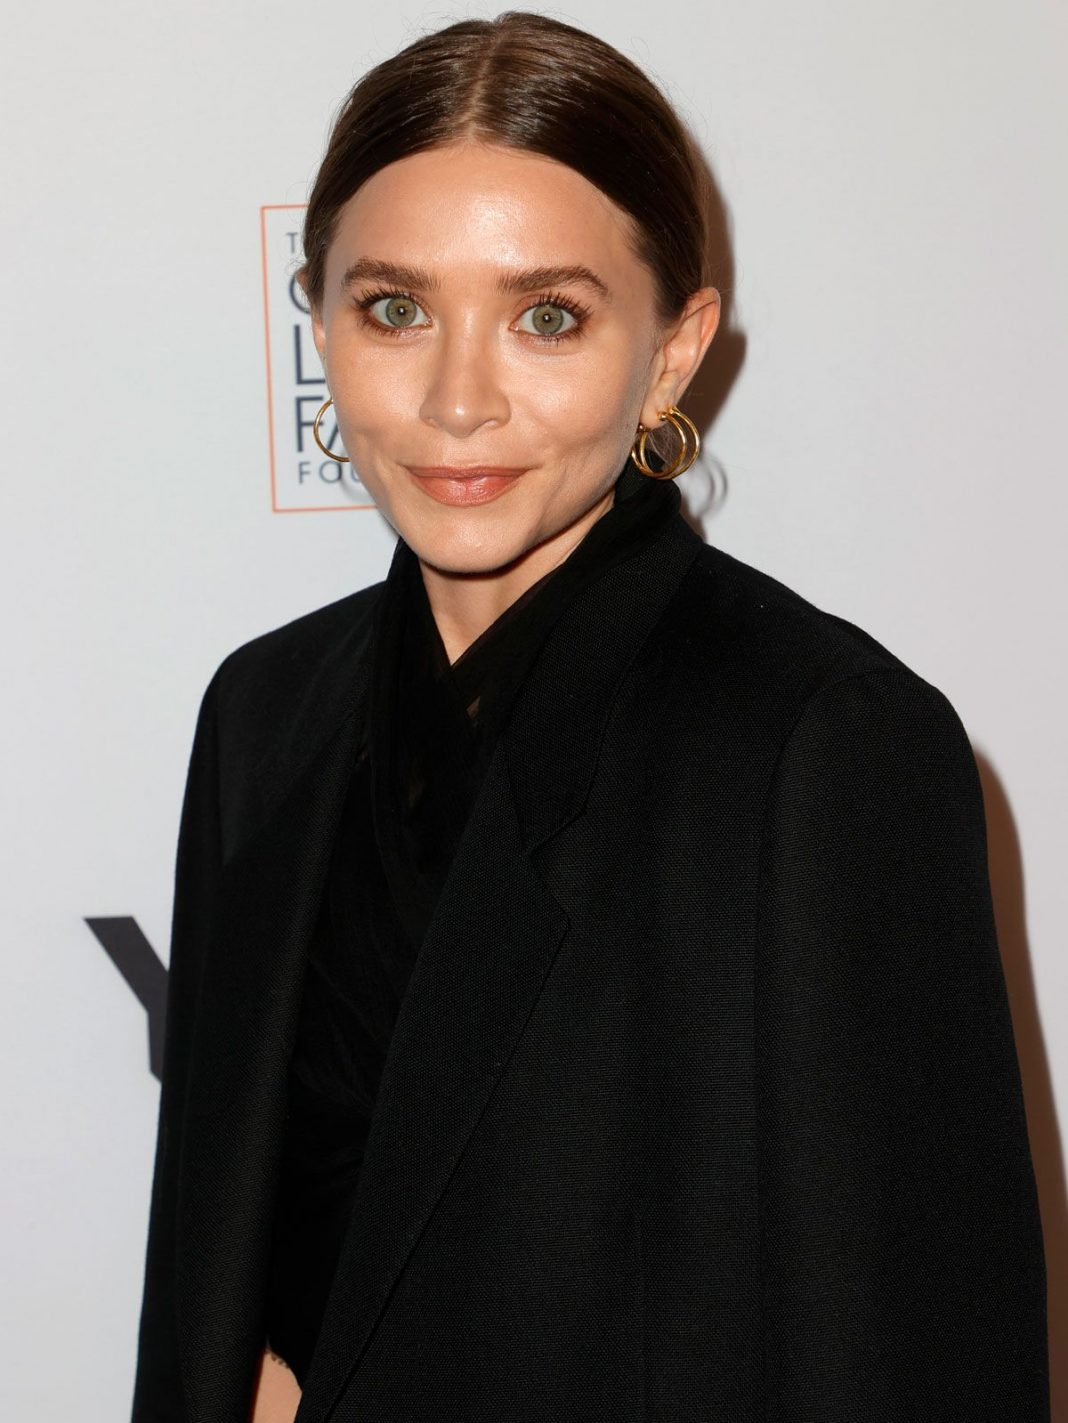 ashley-olsen-and-her-boyfriend-just-made-their-stylish-red-carpet-debut